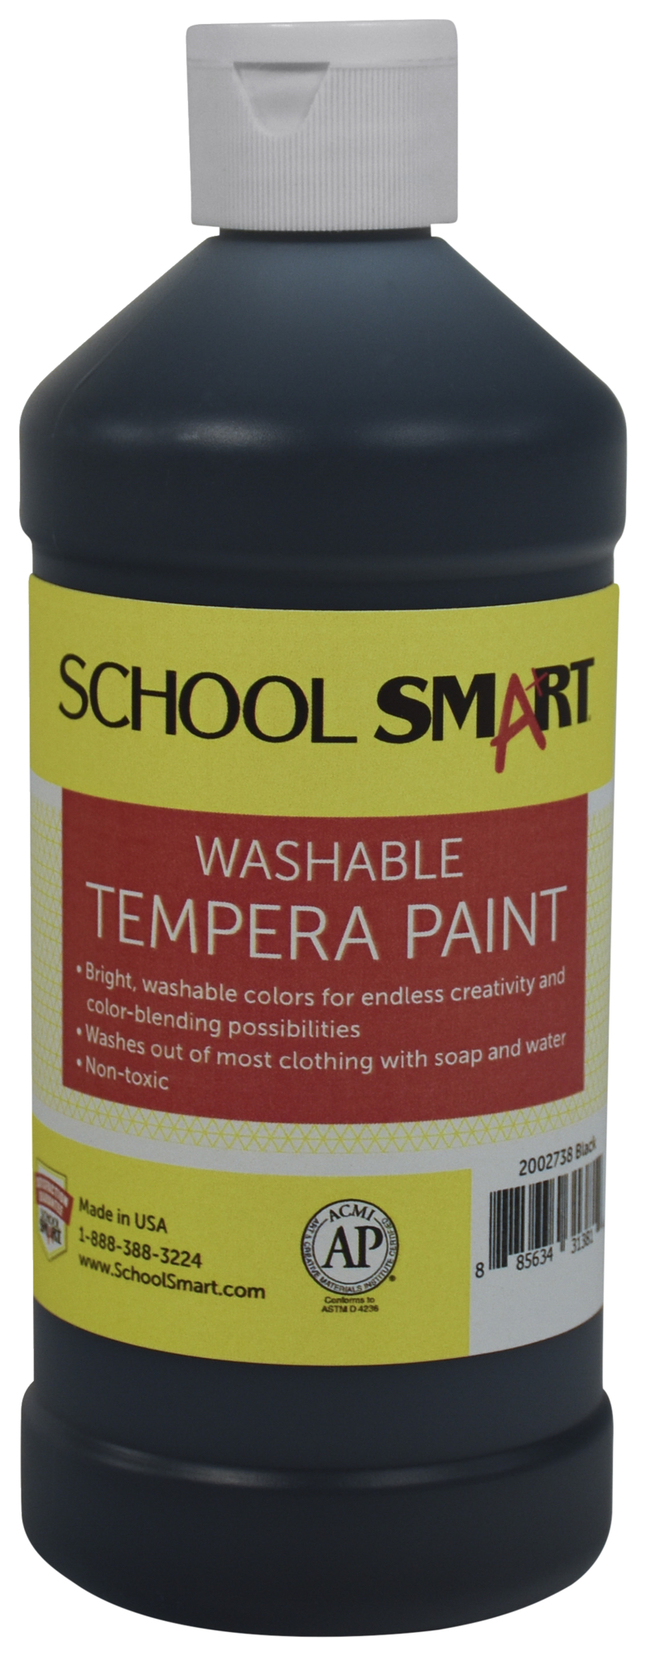 Tempera Paint, Item Number 2002738